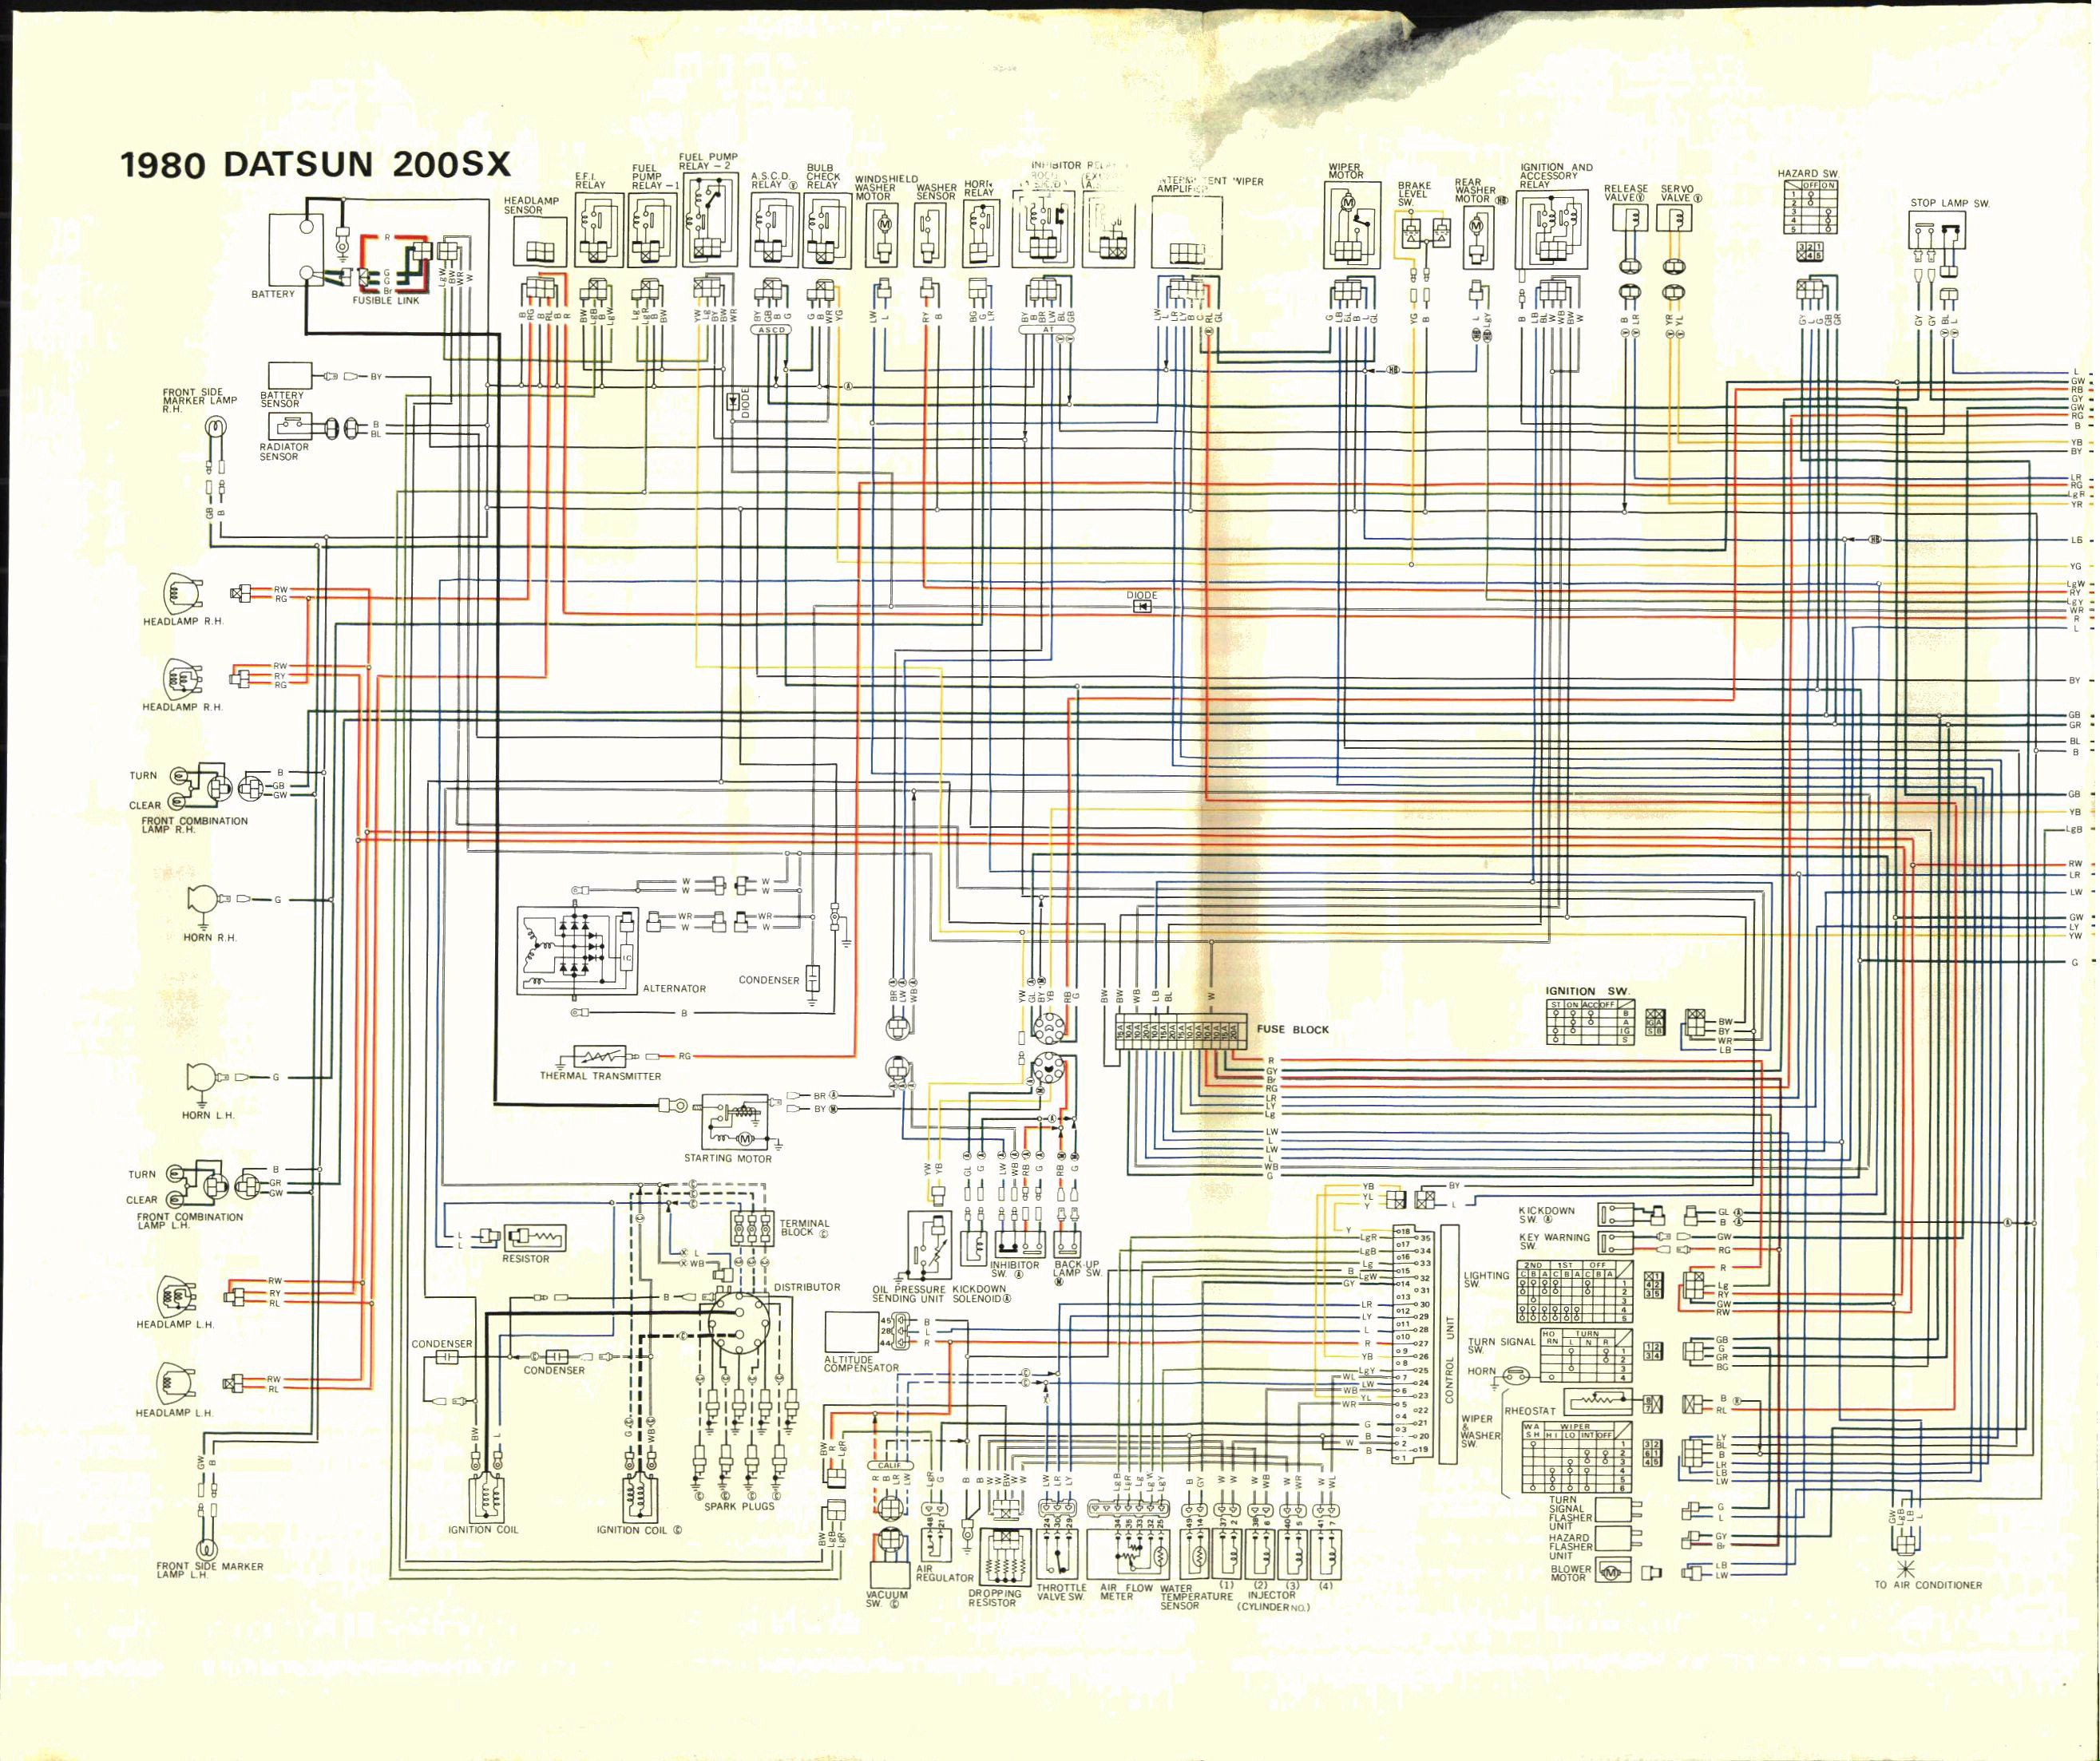 Nissan Largo Wiring Diagram : Datsun sx wire diagram auto genius